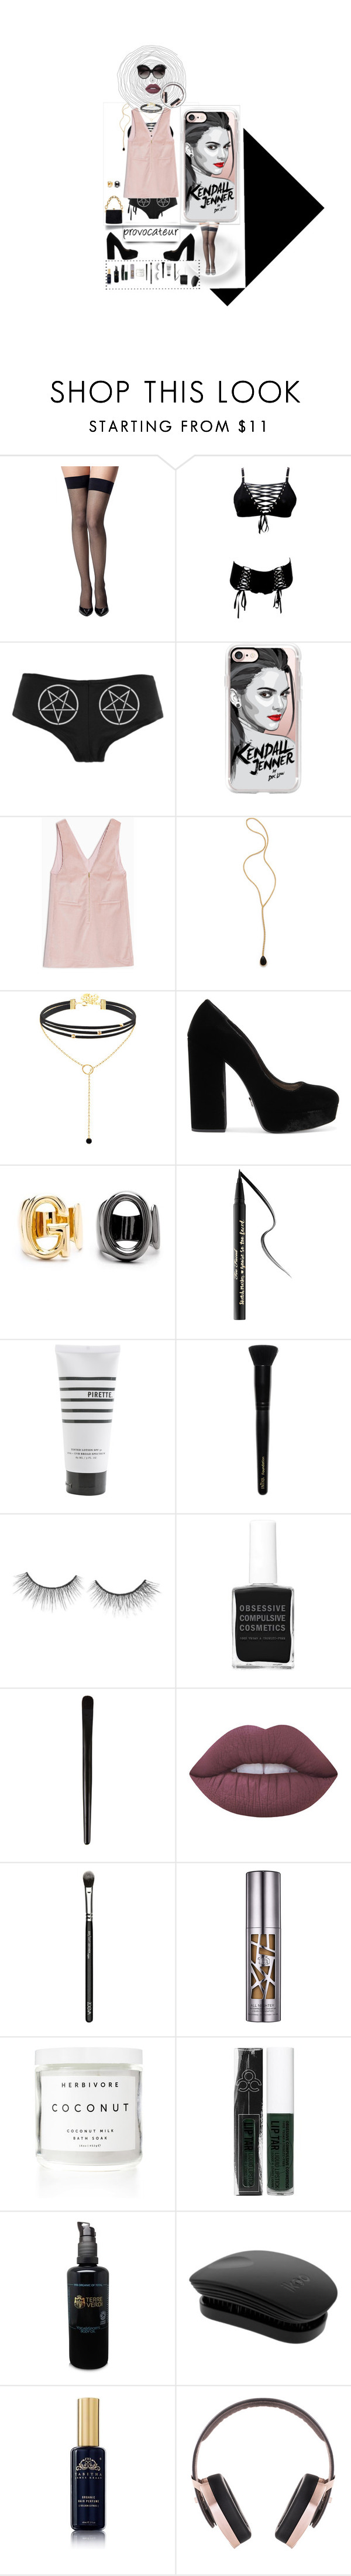 """""""Kendall"""" by lolakelley ❤ liked on Polyvore featuring Commando, Casetify, Max&Co., Jacquie Aiche, Prada, ANAME, Too Faced Cosmetics, Pirette, INIKA and tarte"""